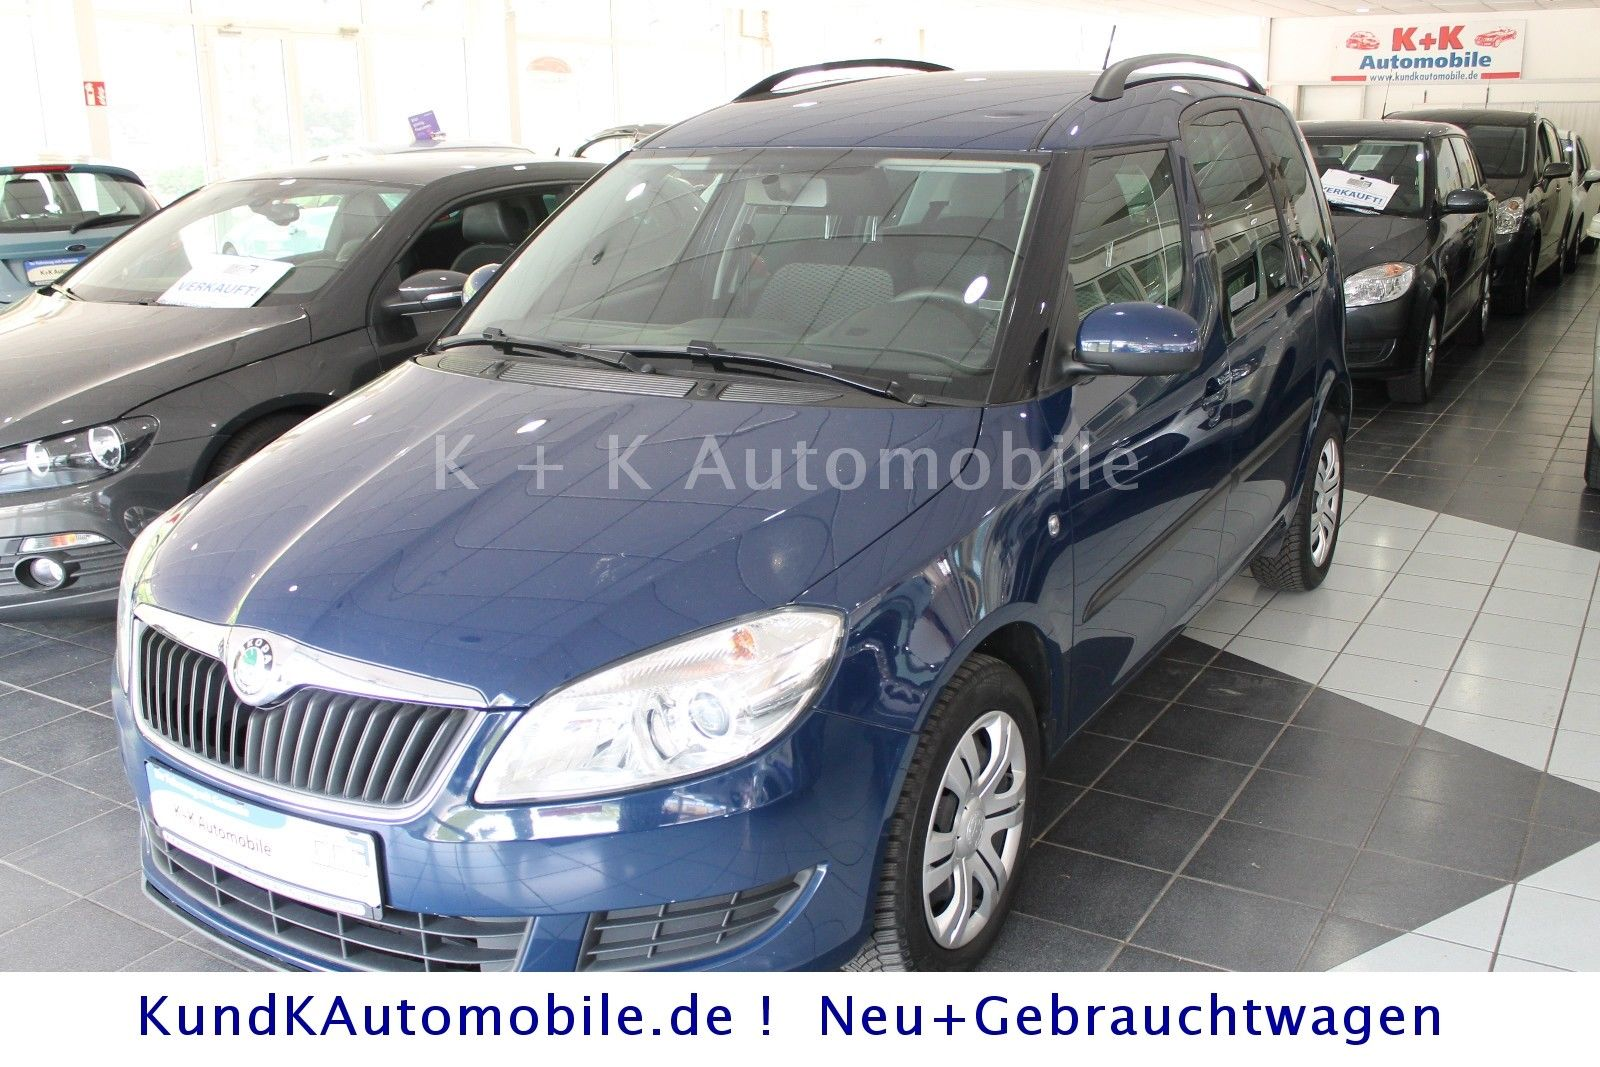 SKODA Roomster 1,6 TDI Ambition Plus Edit. Klimaautom.